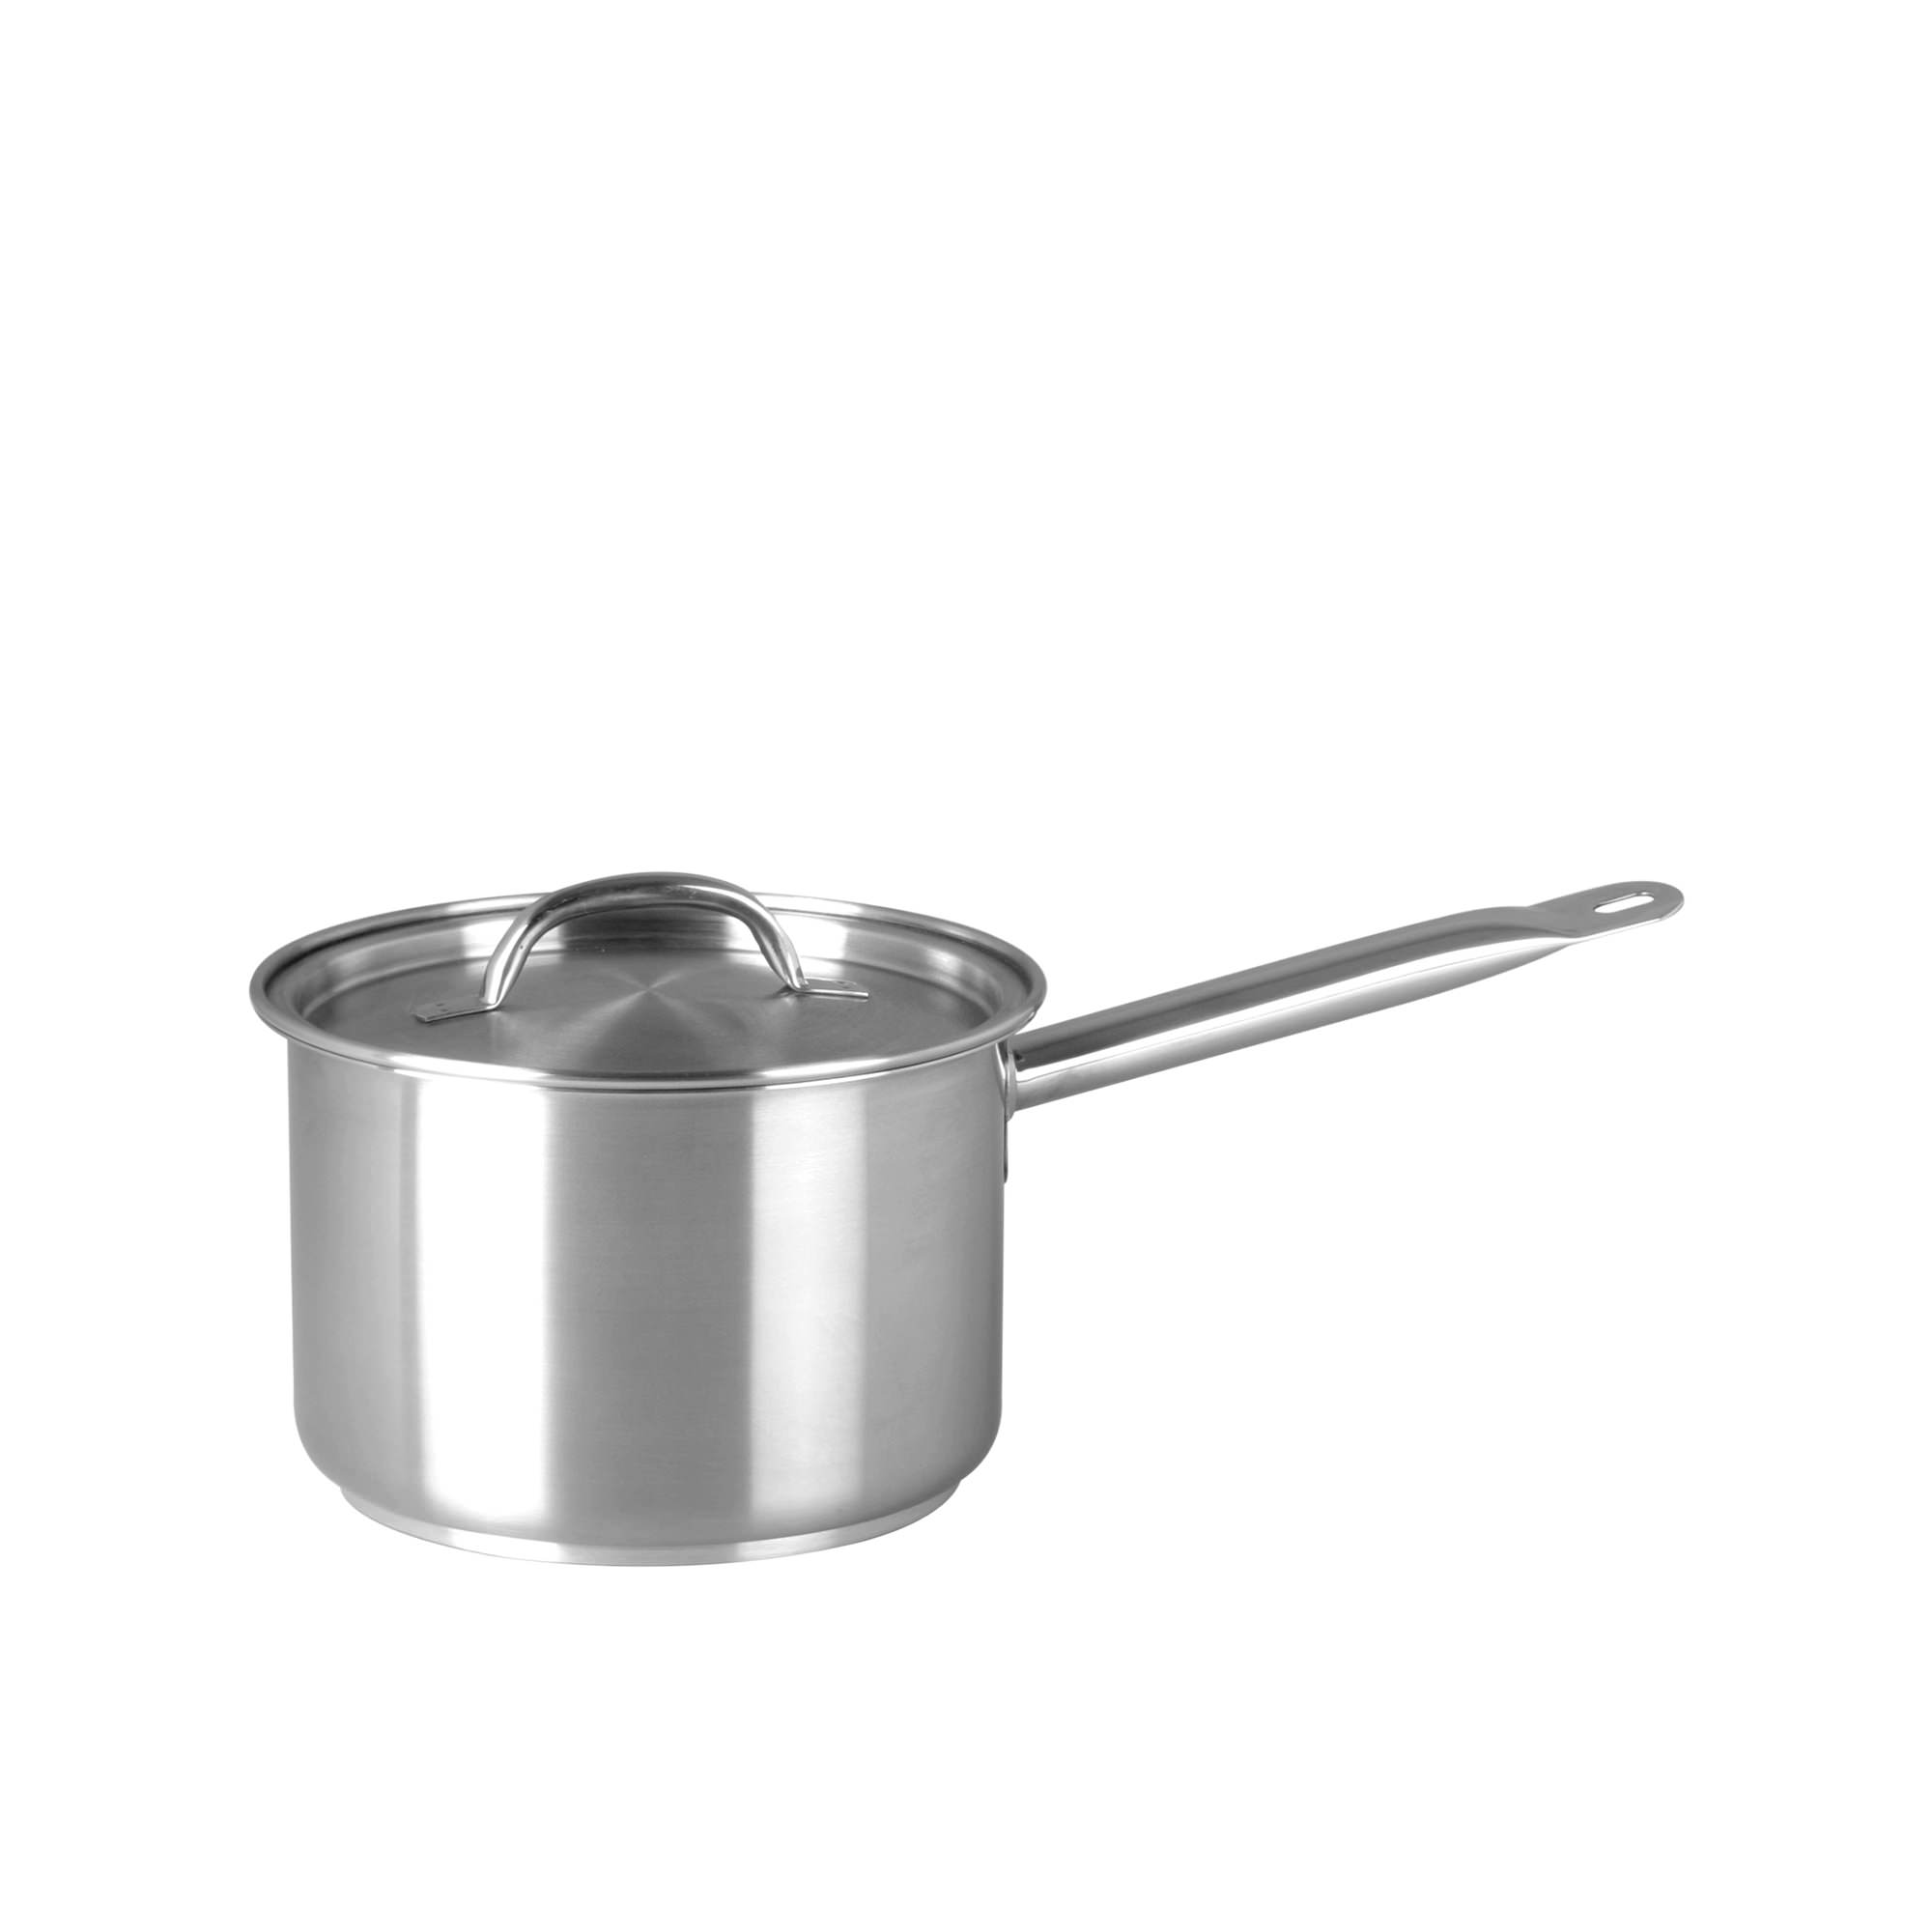 Chef Inox Elite Stainless Steel Saucepan 14cm - 1.2L